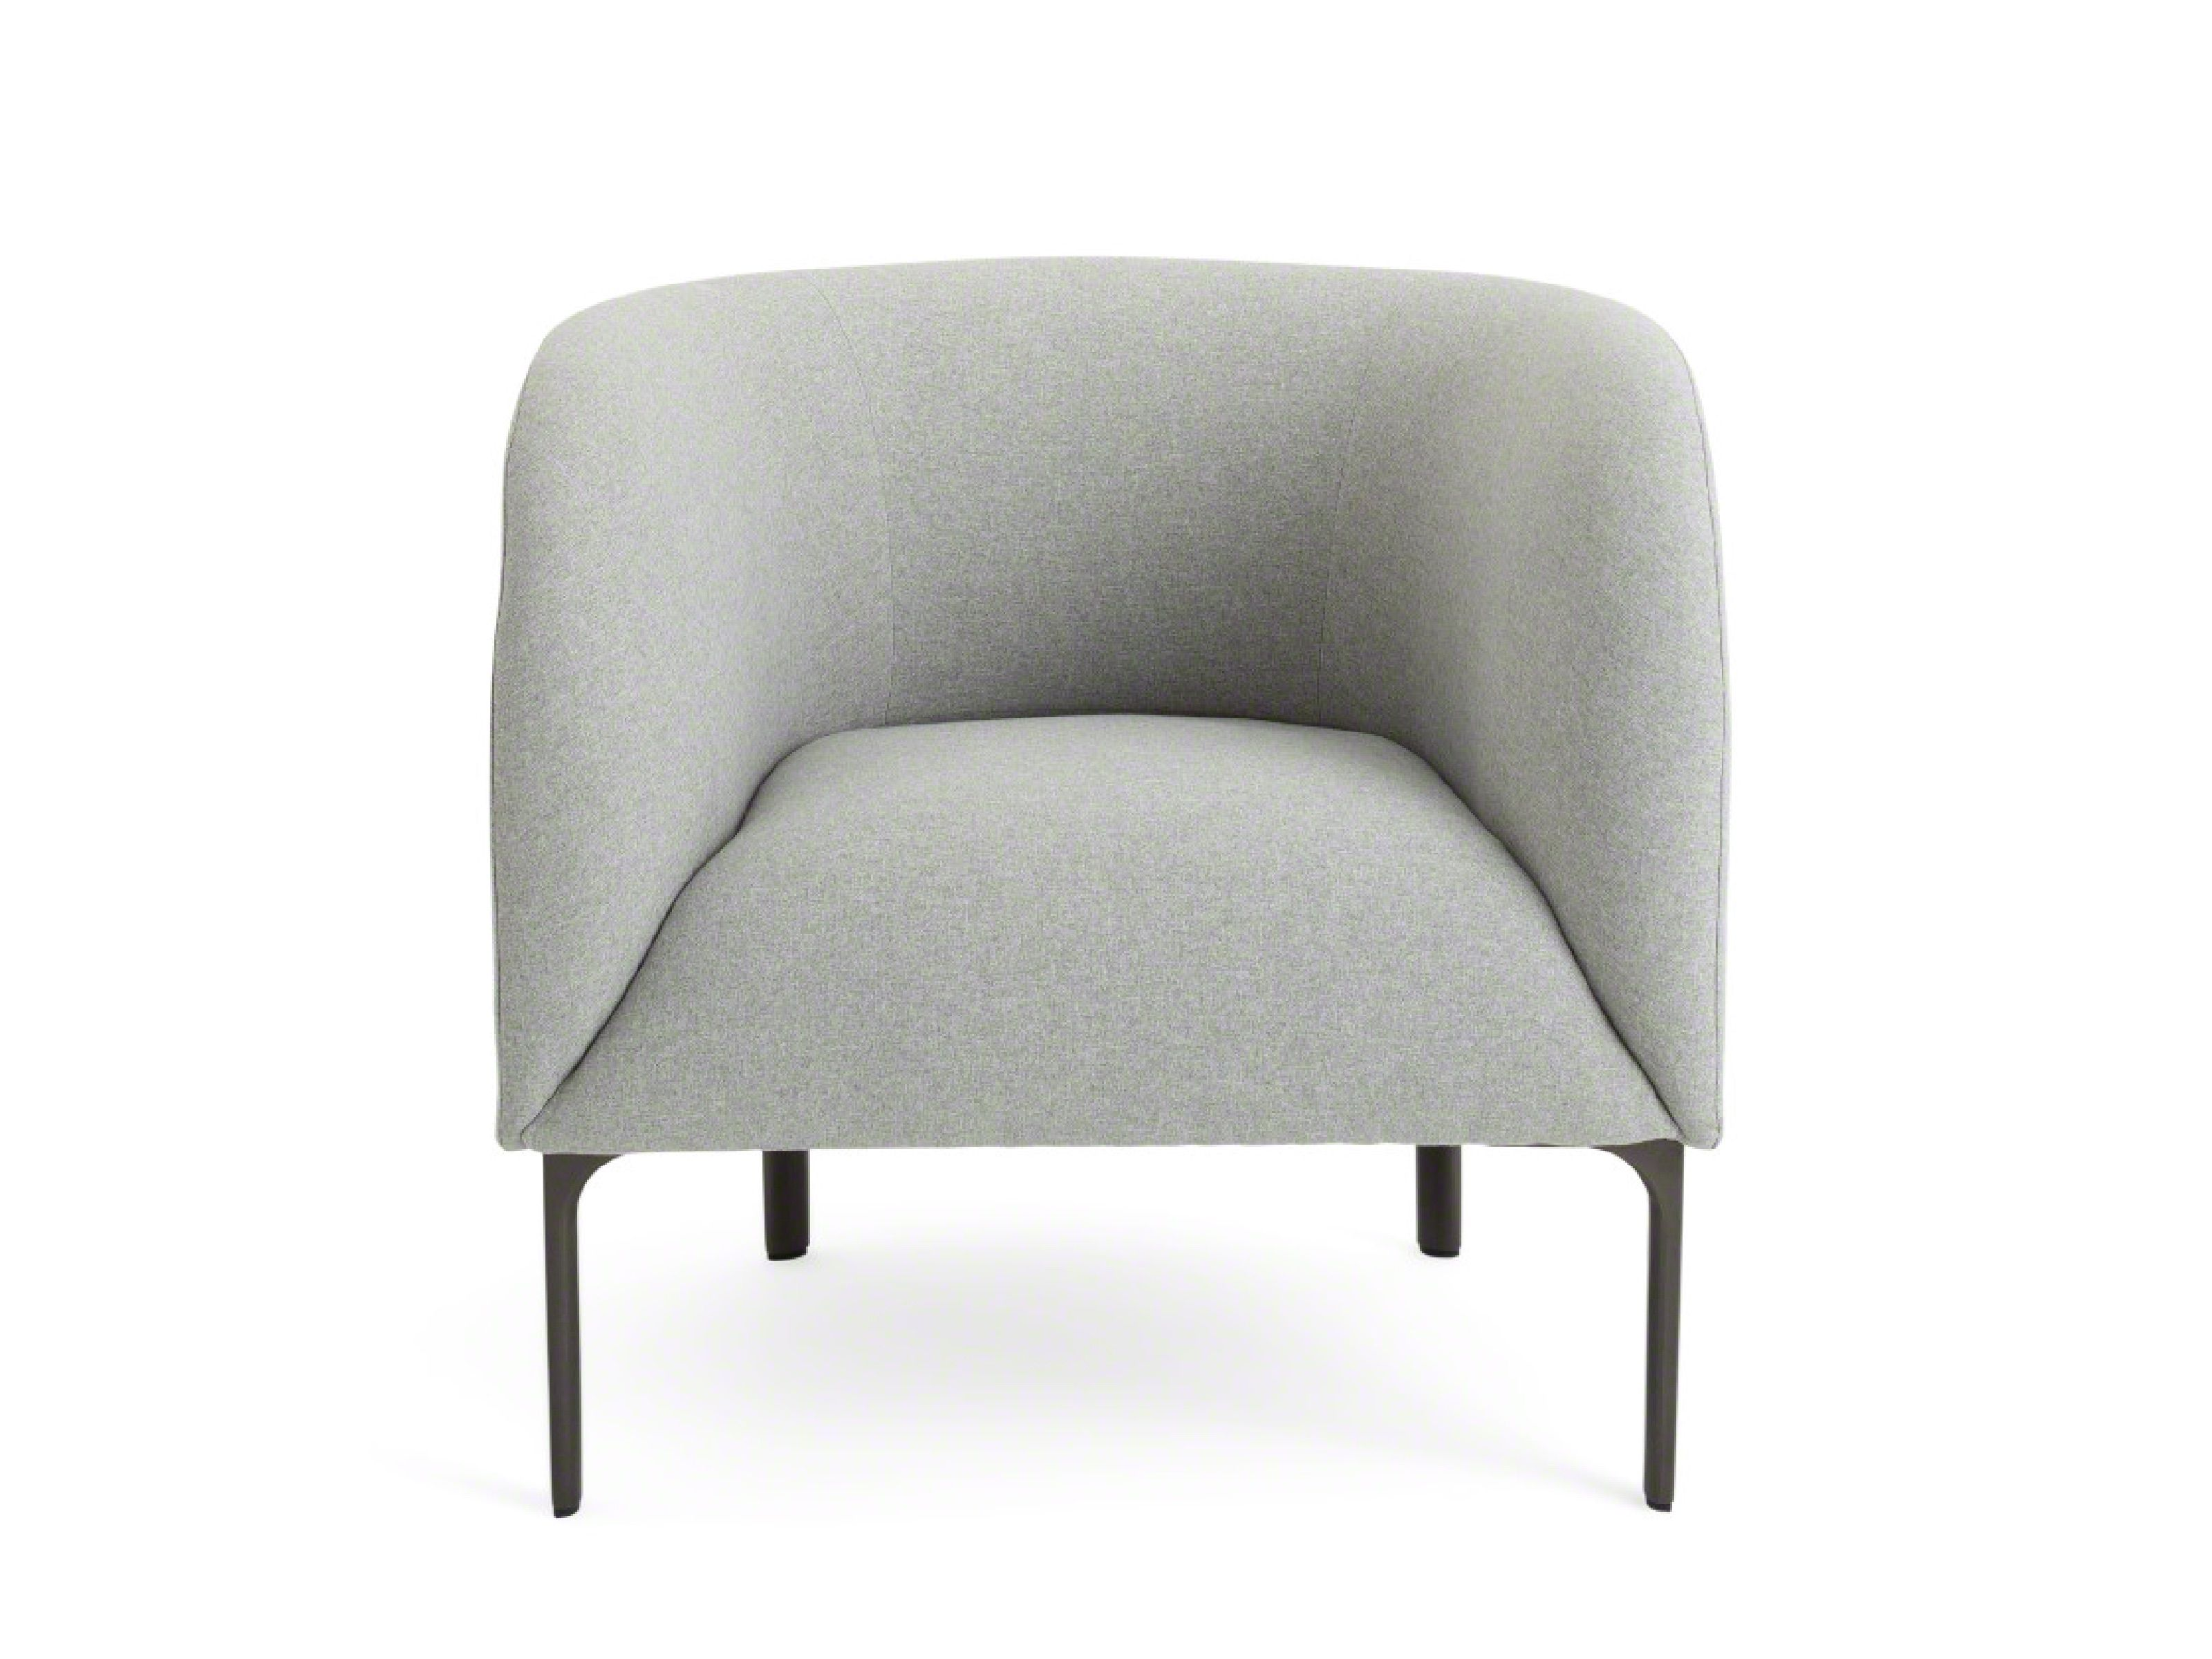 West Elm Work Nimbus Lounge Chair Chair, Lounge seating